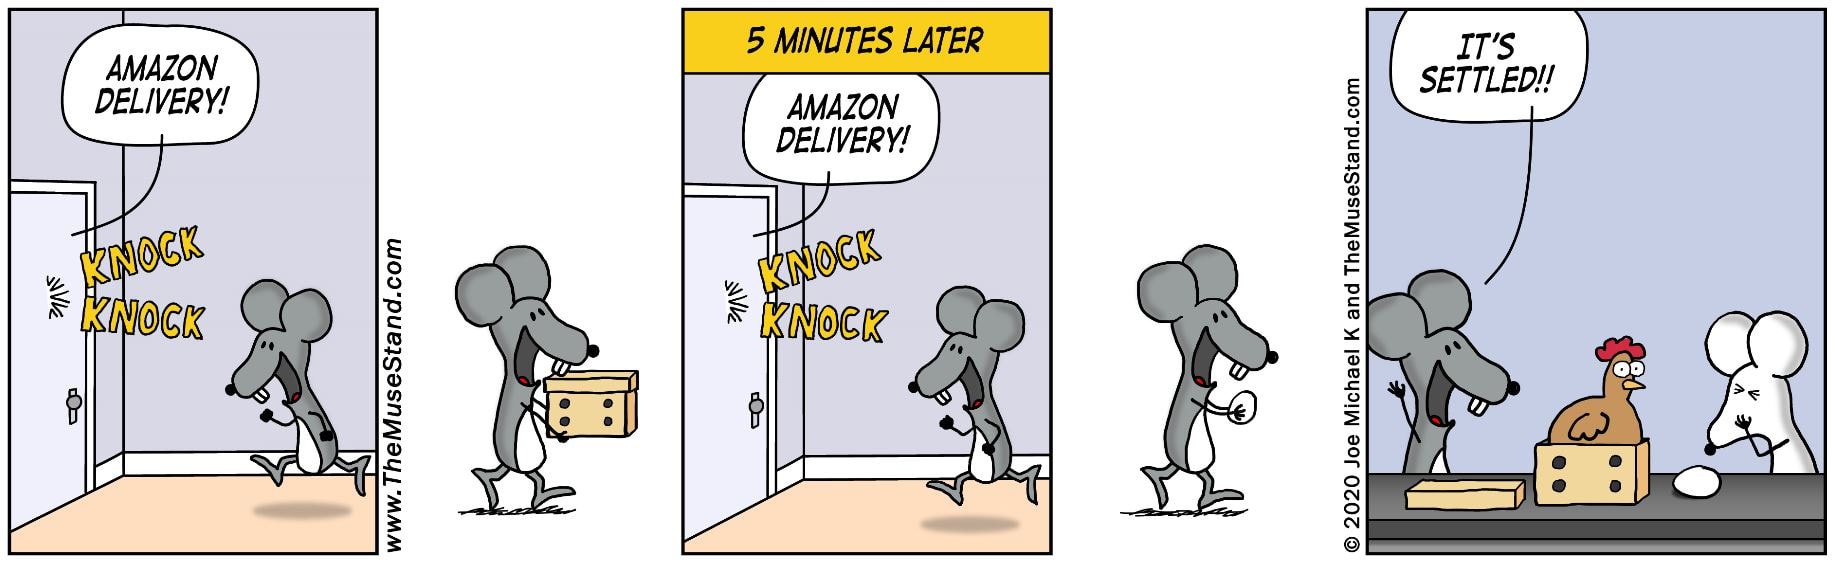 Amazon Delivery - The ThinkShop Comics